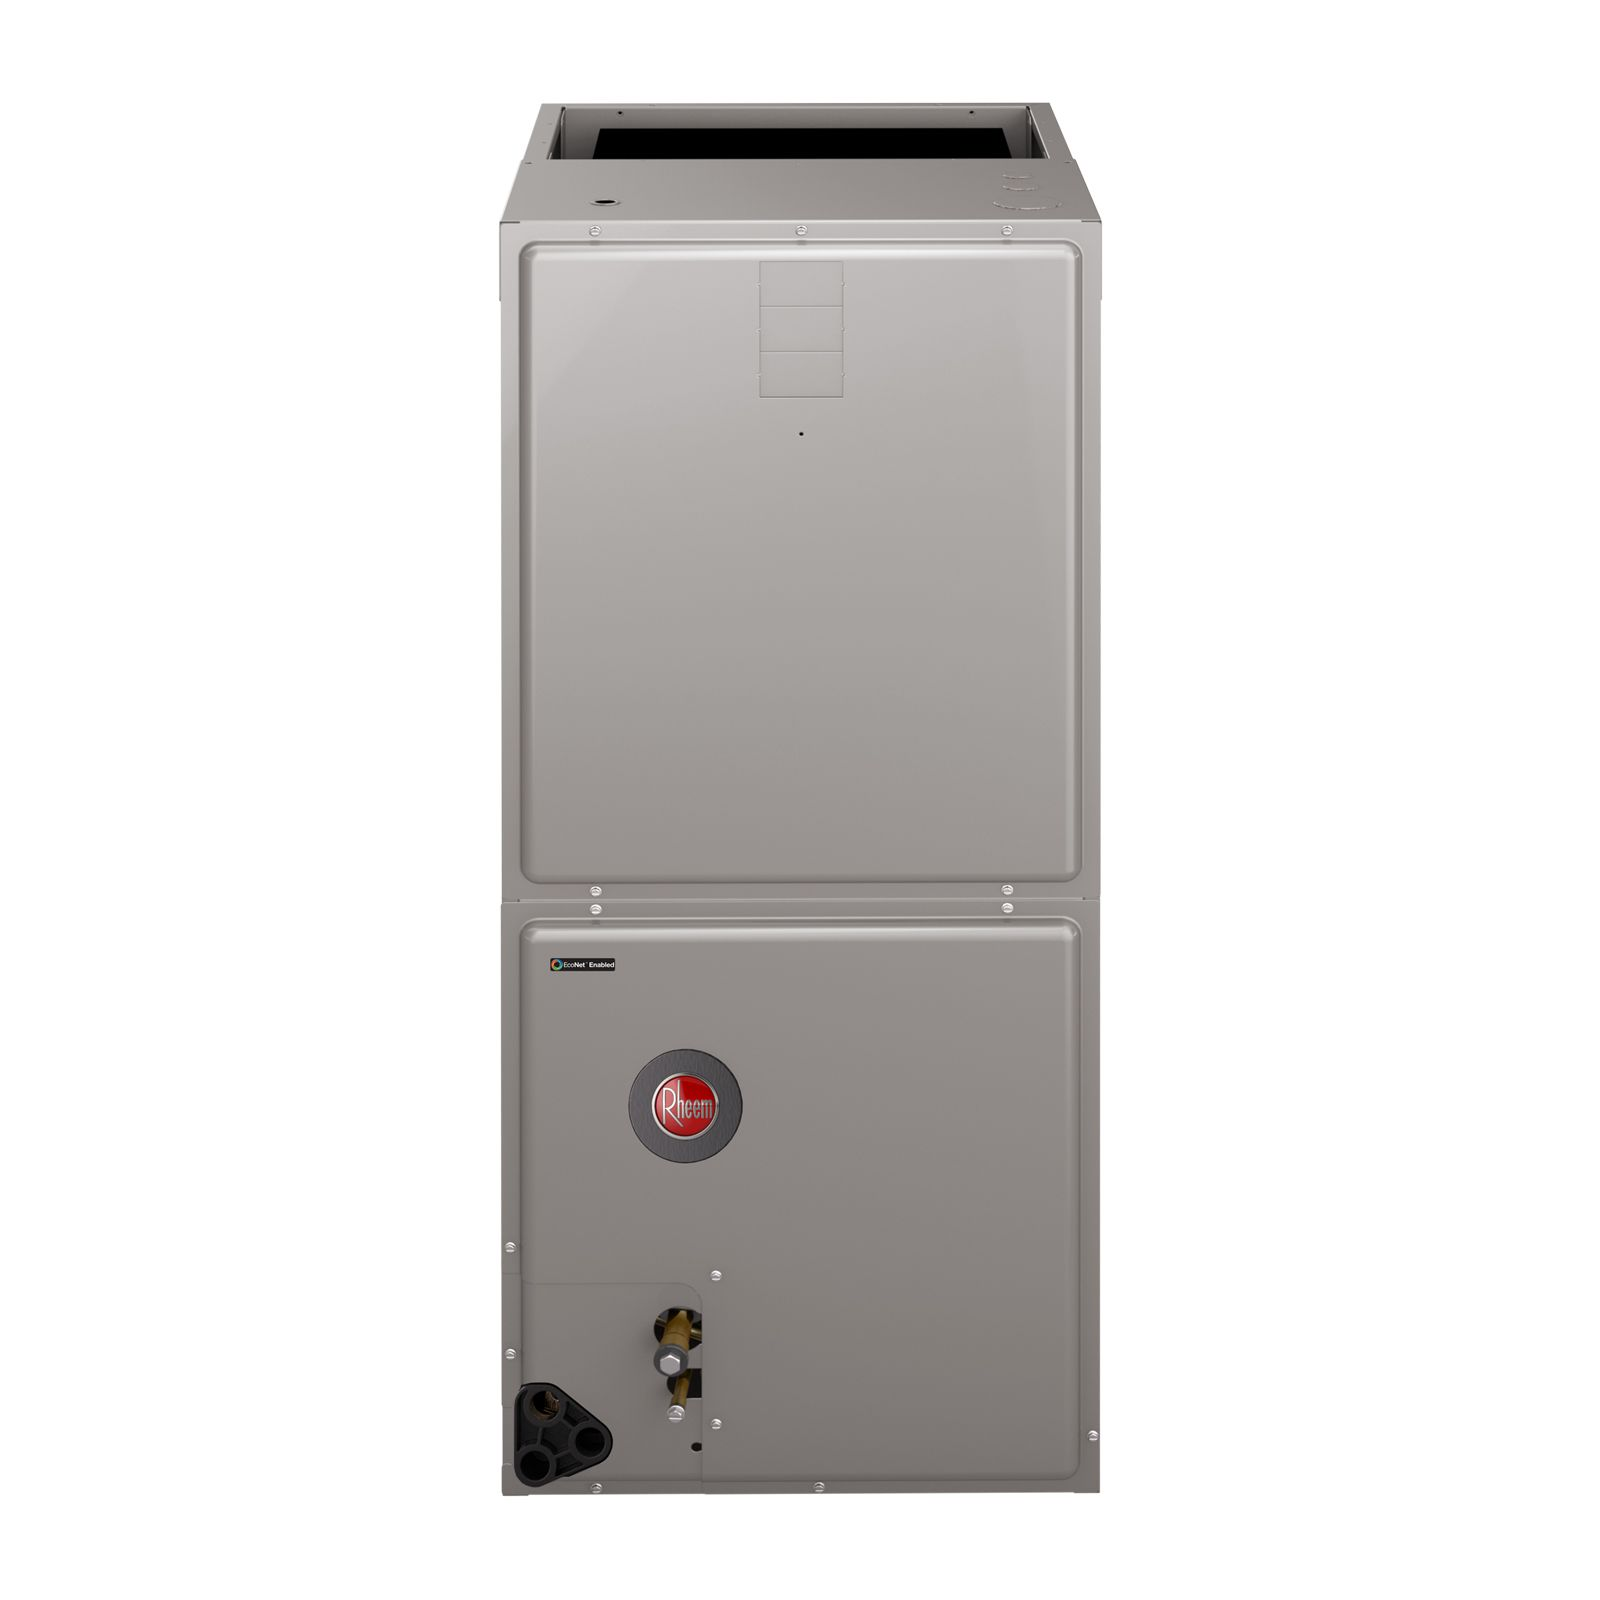 "Rheem RHMV2421MEACJA - 2 Ton, Modulating, EcoNet Enabled, Air Handler, ECM Motor, EEV Valve, 21"" Wide, 208/240V, 1Ph, 60Hz"